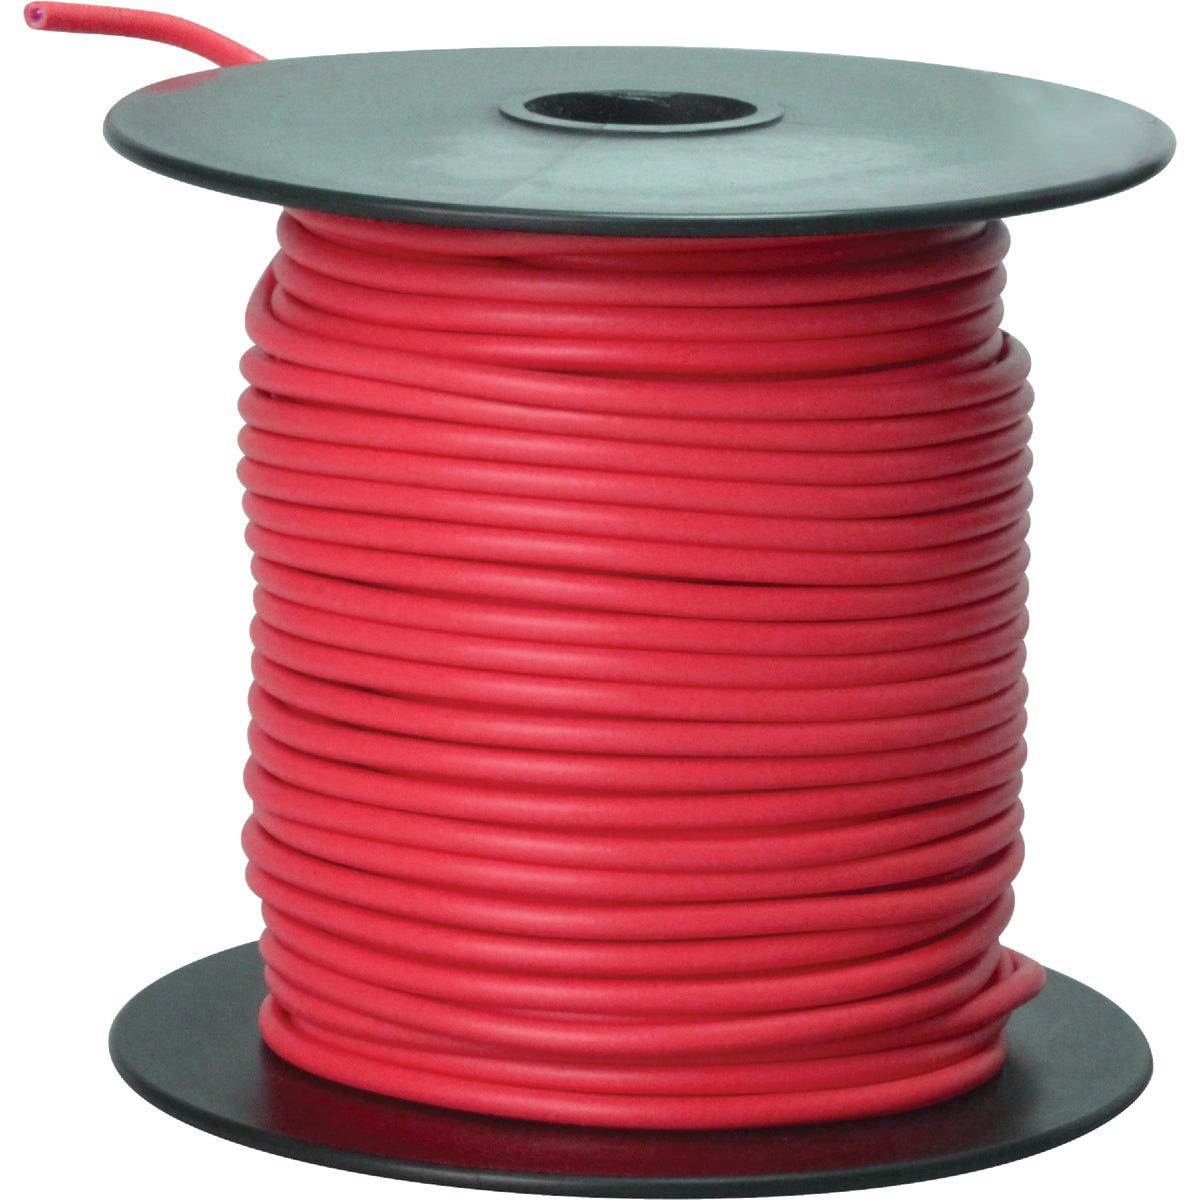 100' 16GA RED AUTO WIRE - 16-100-16 by Woods Wire Coleman